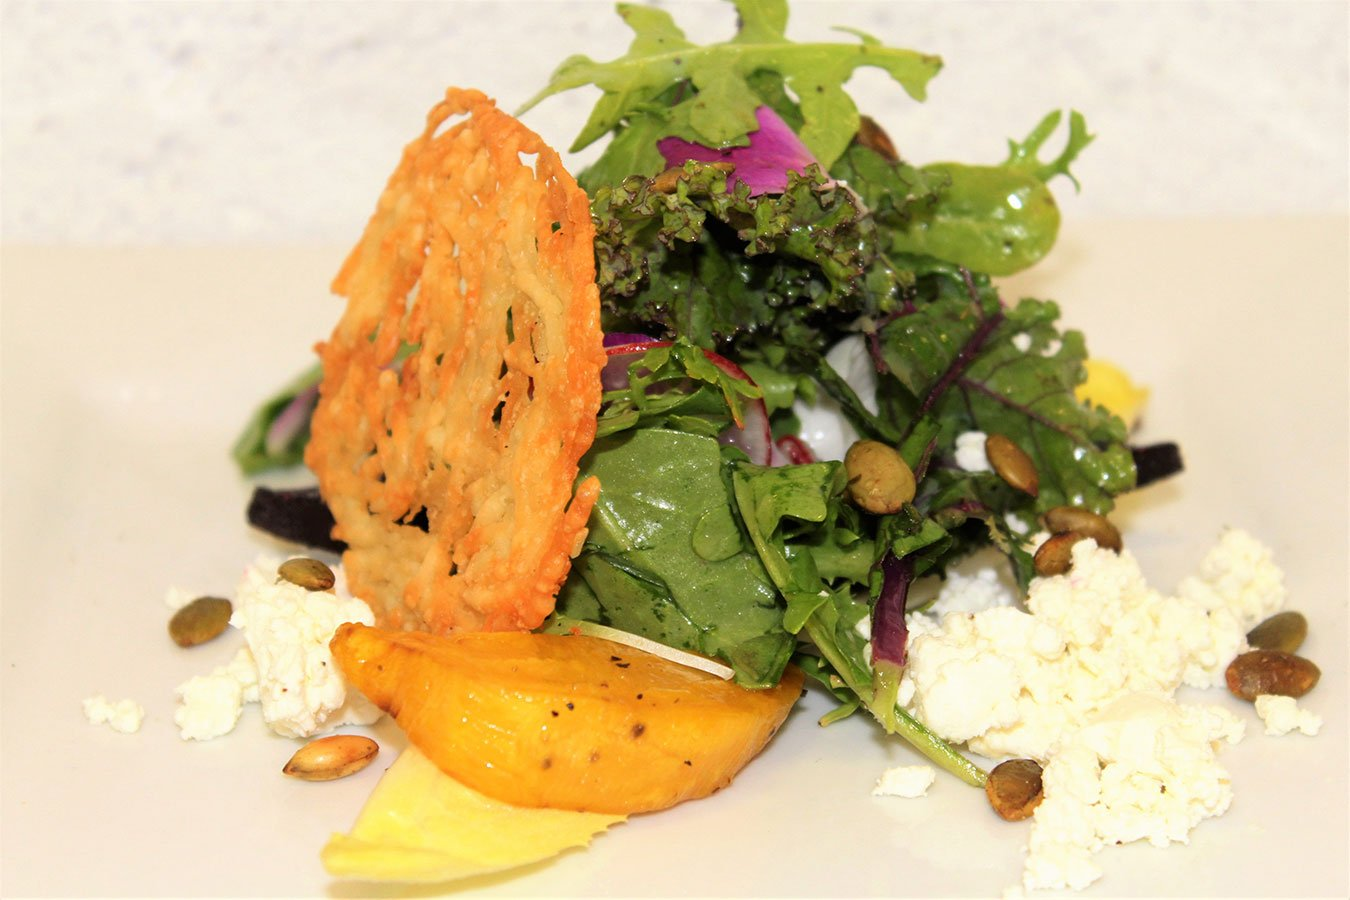 Roasted red and golden beet salad with shaved fennel, pepitas and montrachet goat cheese on baby greens with citrus vinaigrette and montrachet goat cheese